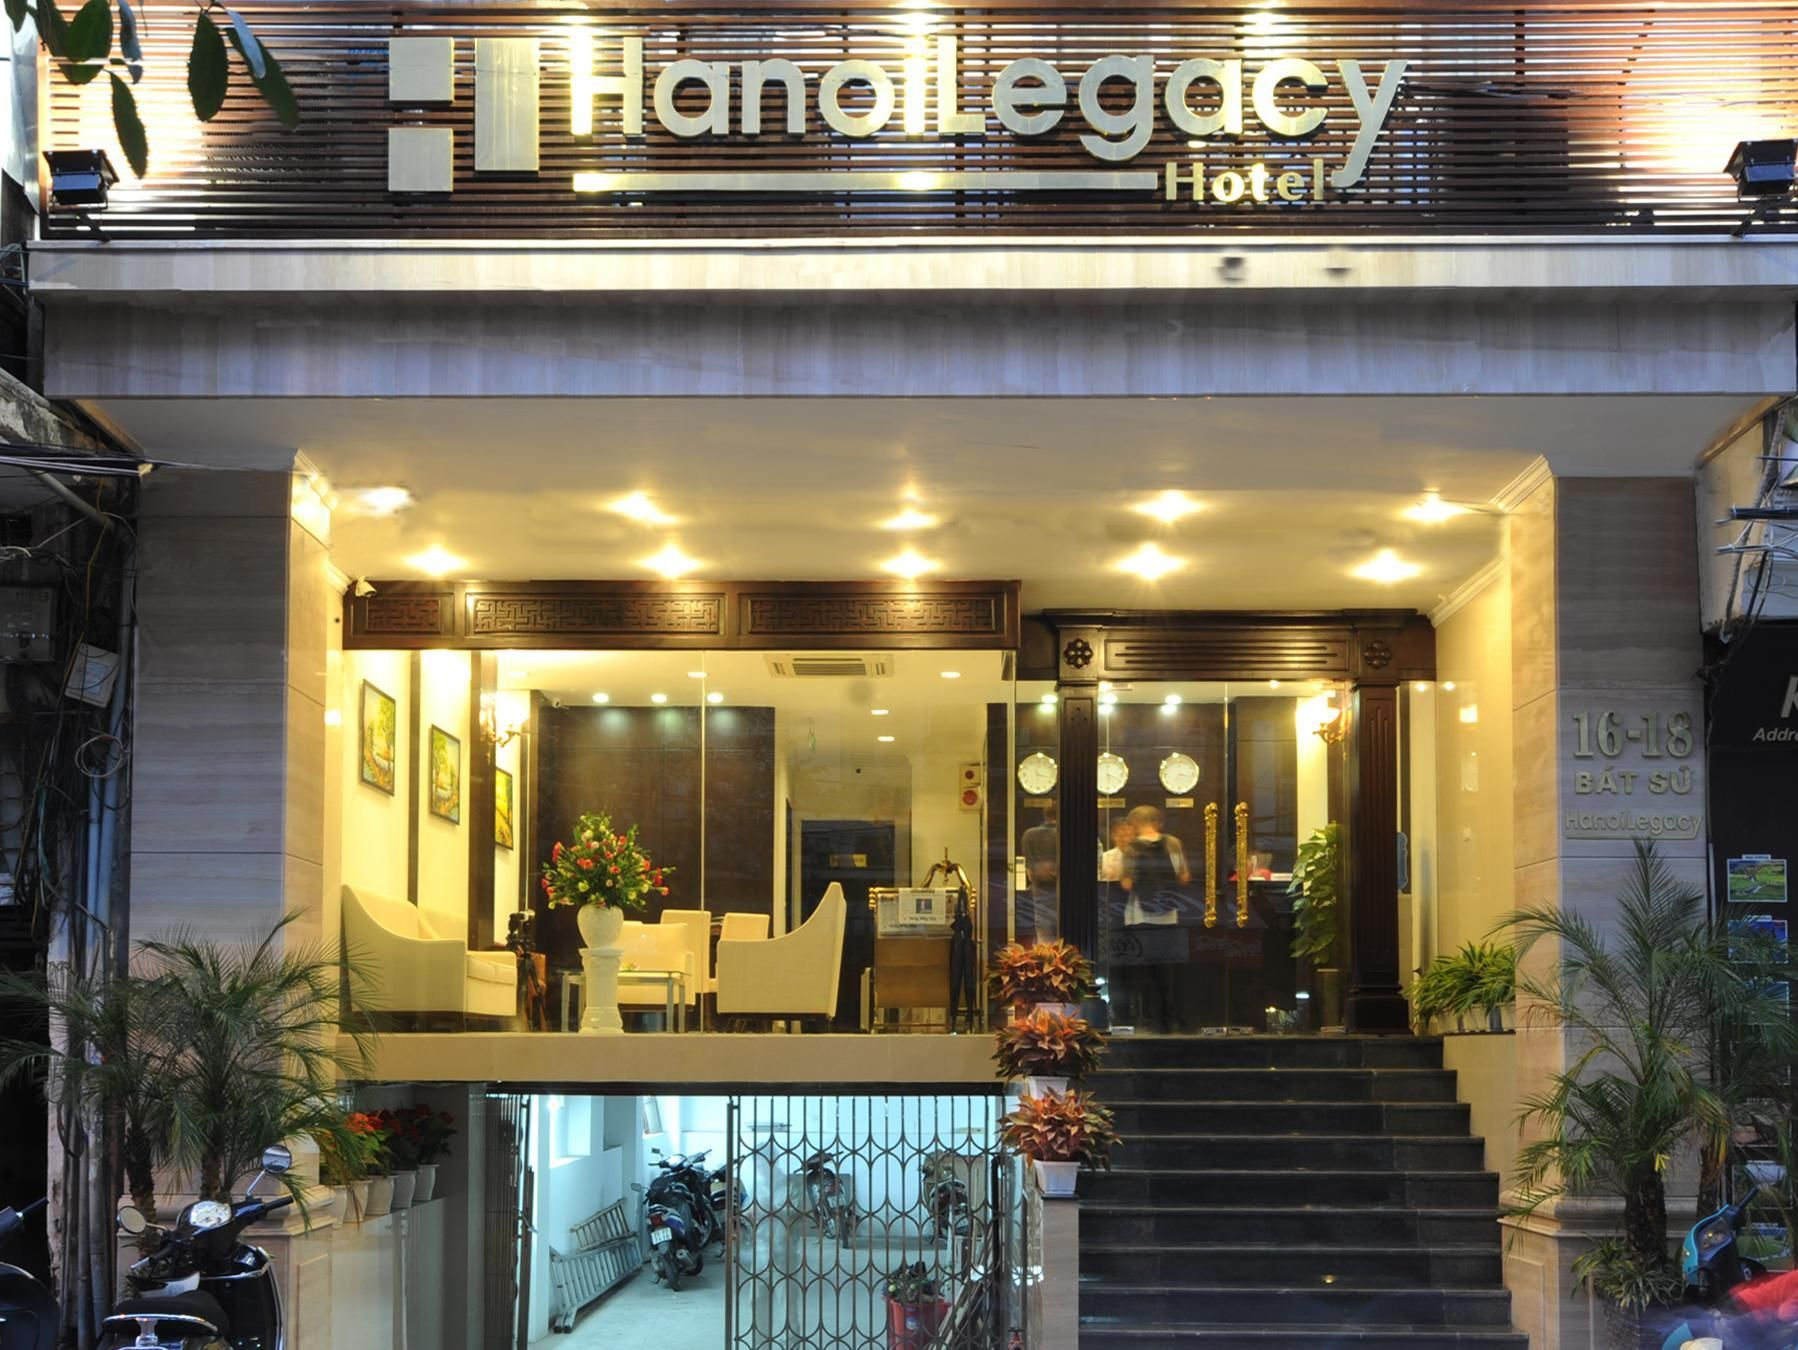 Hanoi Hanoi Legacy Hotel - Bat Su Vietnam, Asia Hanoi Legacy Hotel - Bat Su is conveniently located in the popular Old Quarter area. The hotel offers guests a range of services and amenities designed to provide comfort and convenience. Free Wi-Fi in all rooms, 24-hour room service, facilities for disabled guests, Wi-Fi in public areas, valet parking are just some of the facilities on offer. Television LCD/plasma screen, internet access – wireless, internet access – wireless (c...